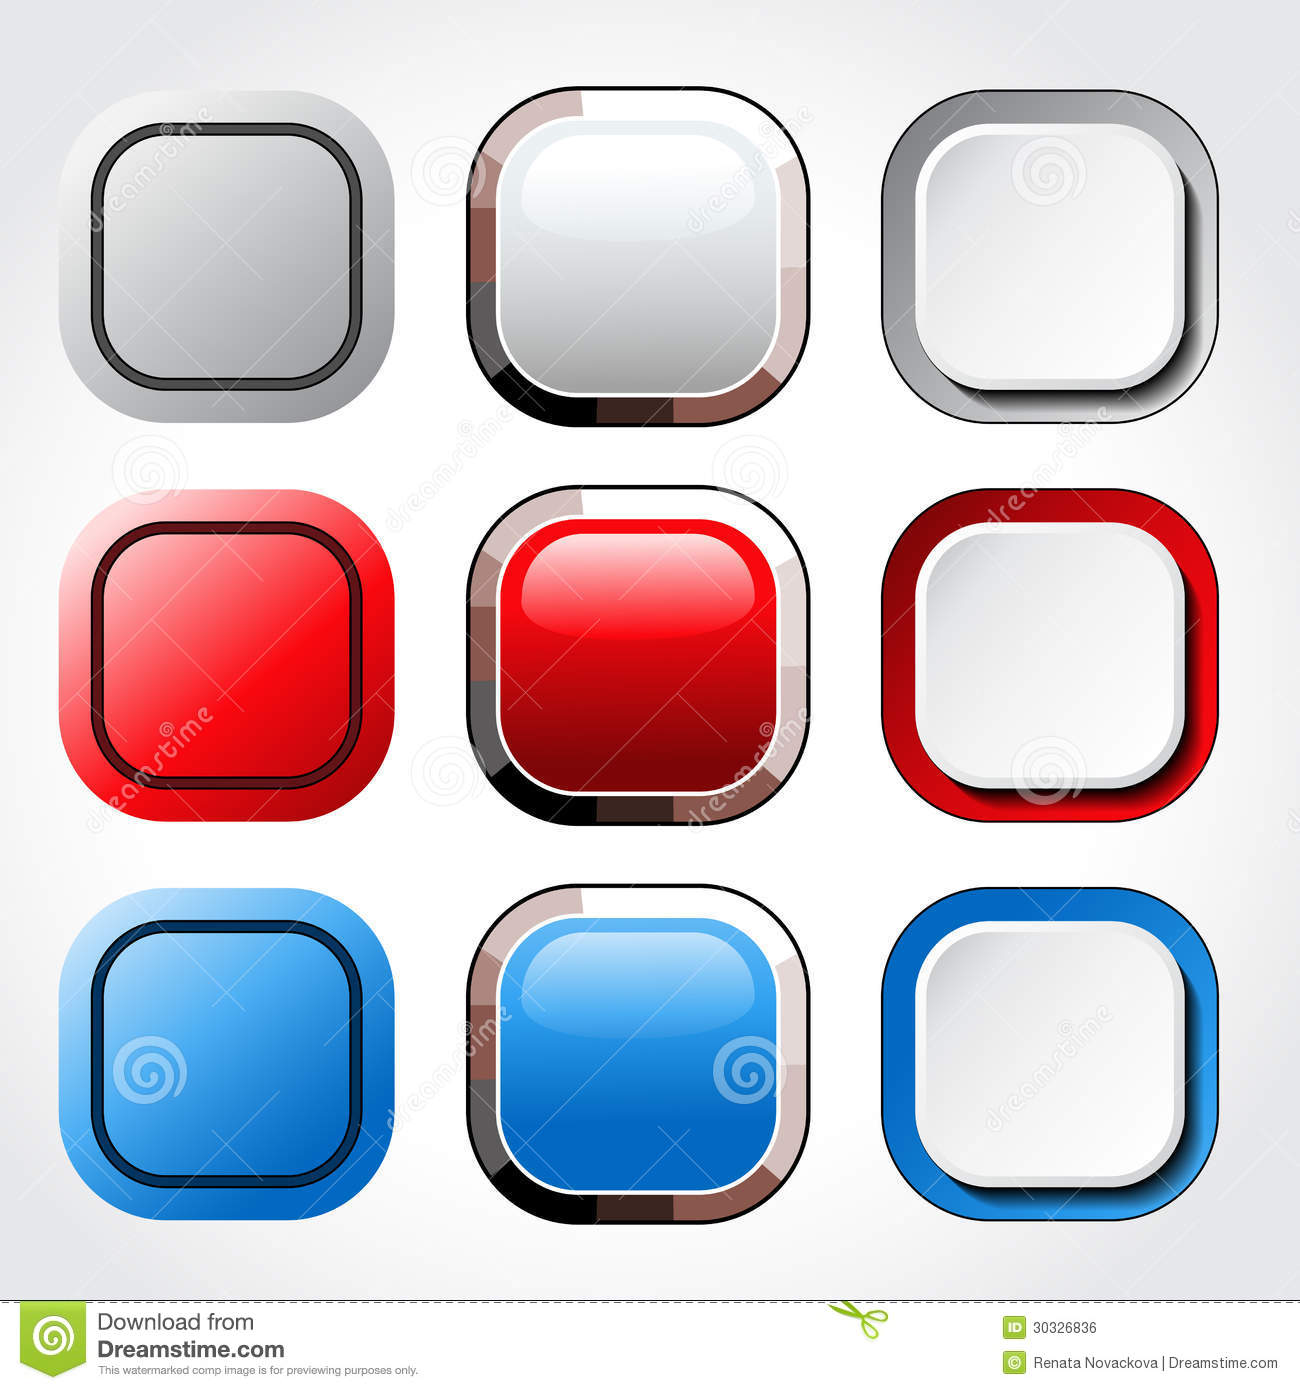 Square blank glossy buttons